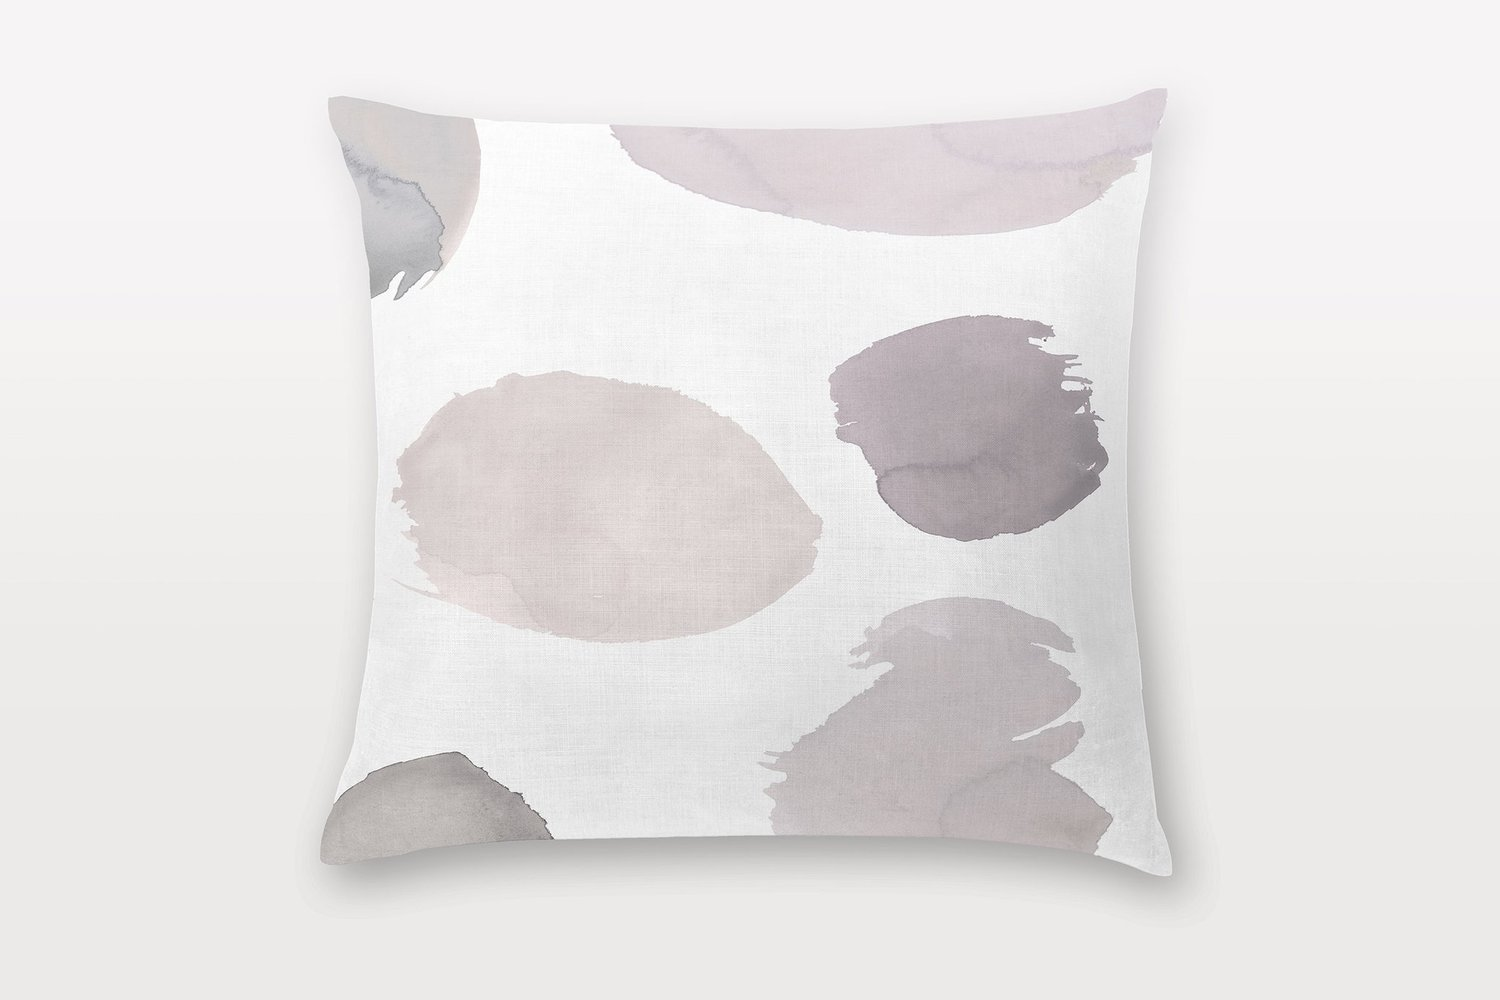 Palette pillow oyster 18x18